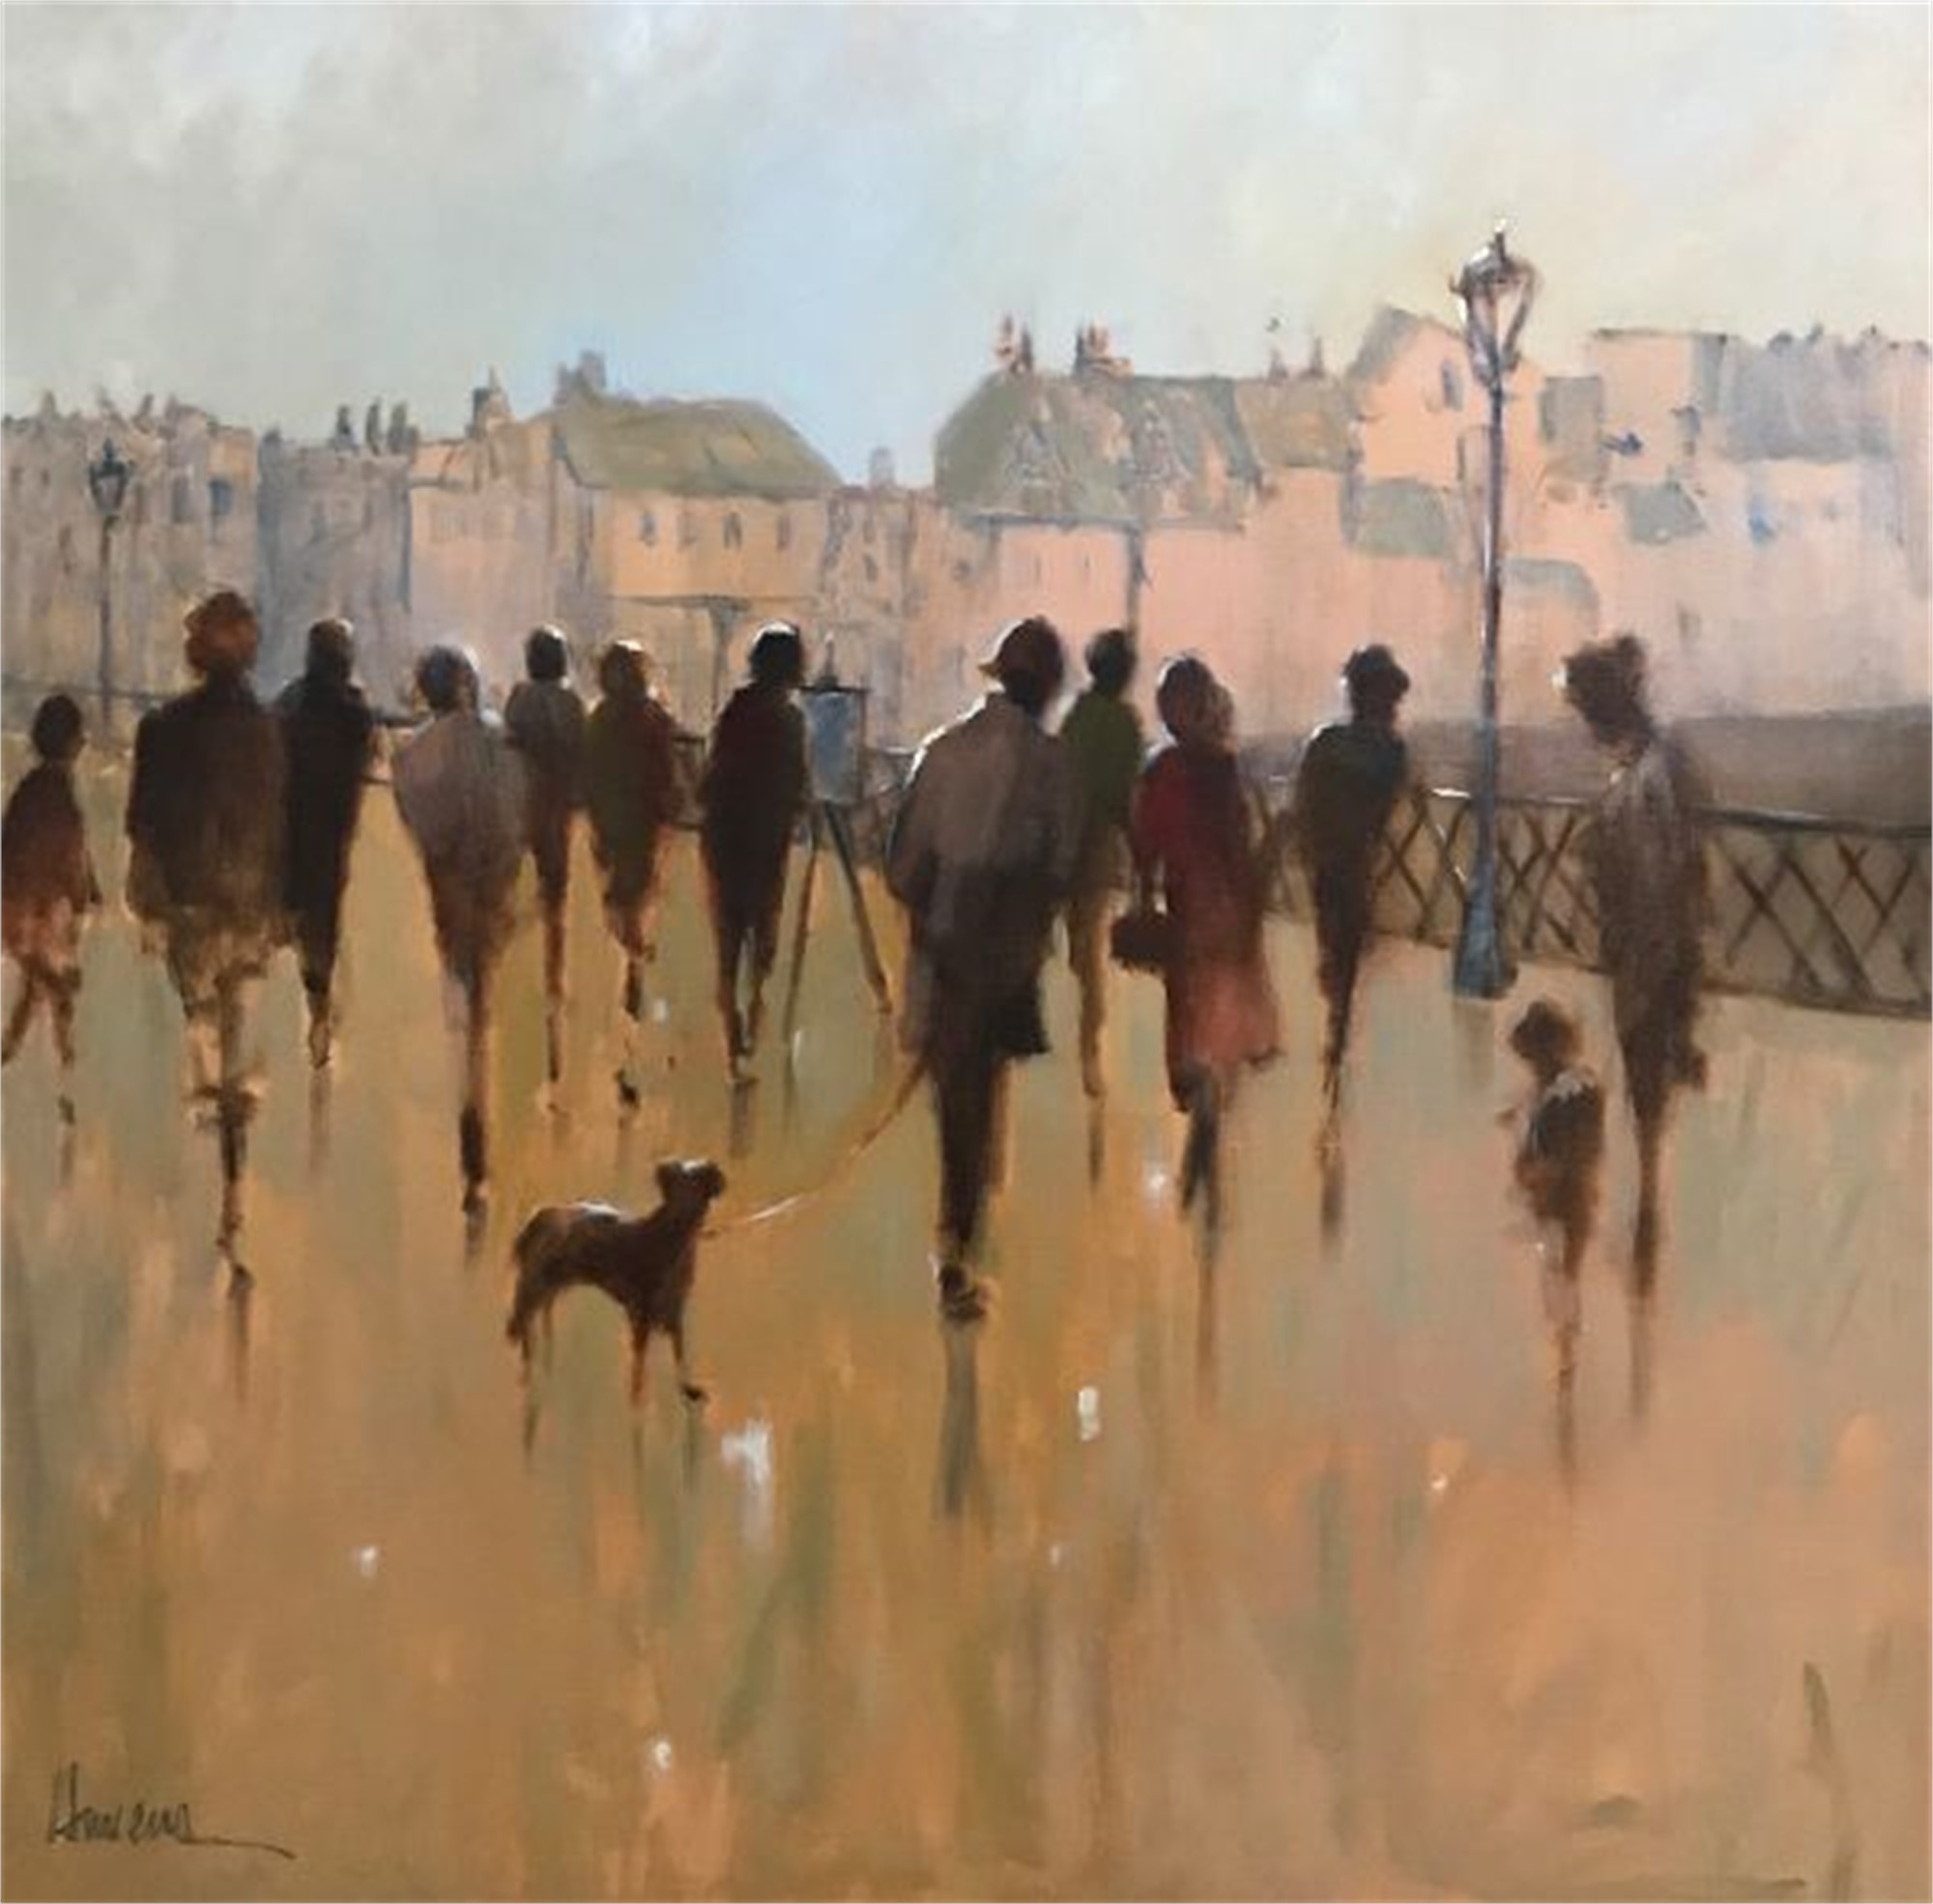 From the Bridge by Betsy Havens